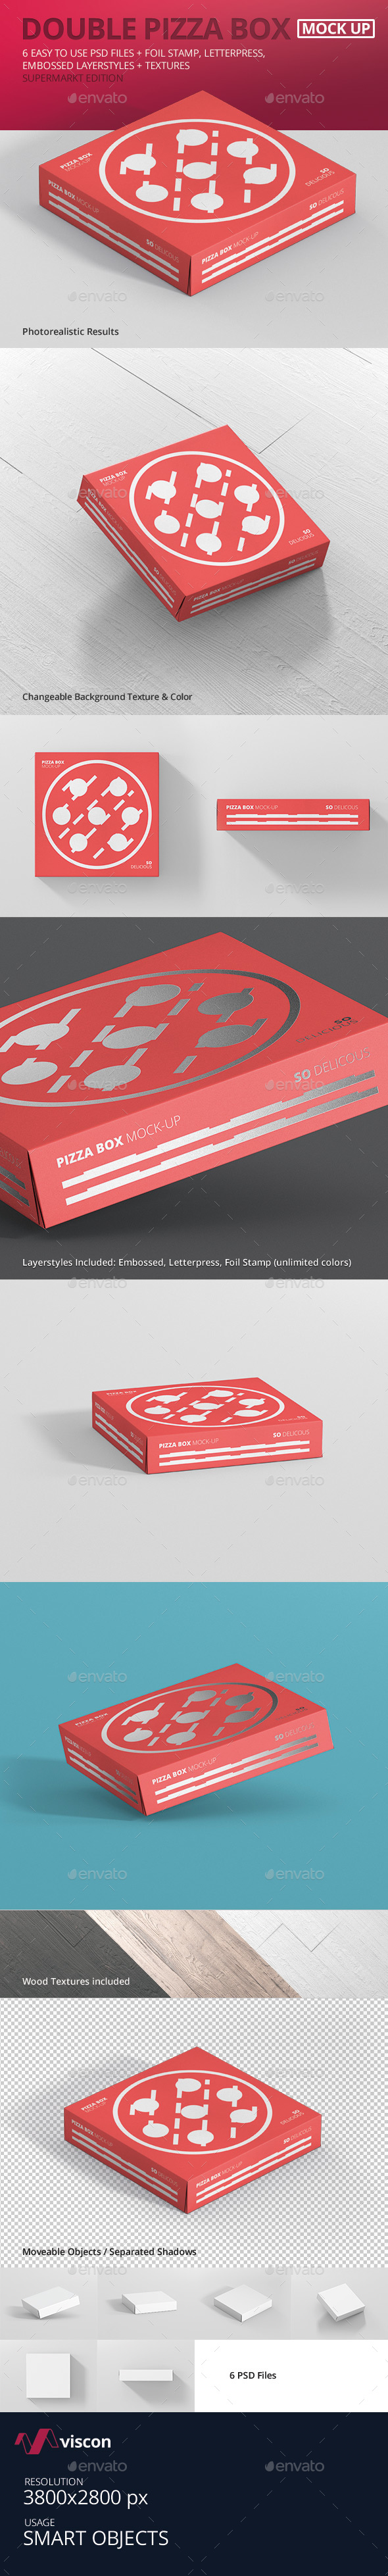 Pizza Box Mockup - Double Pack Supermarket Edition